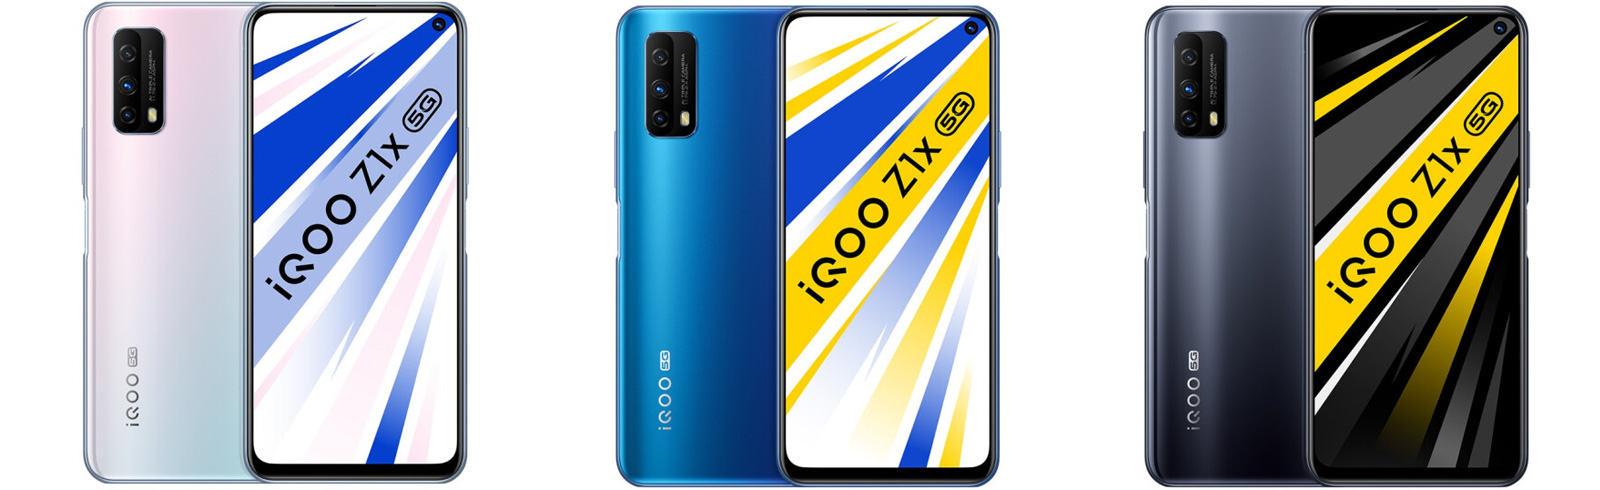 Vivo launched the iQOO Z1x 5G in China